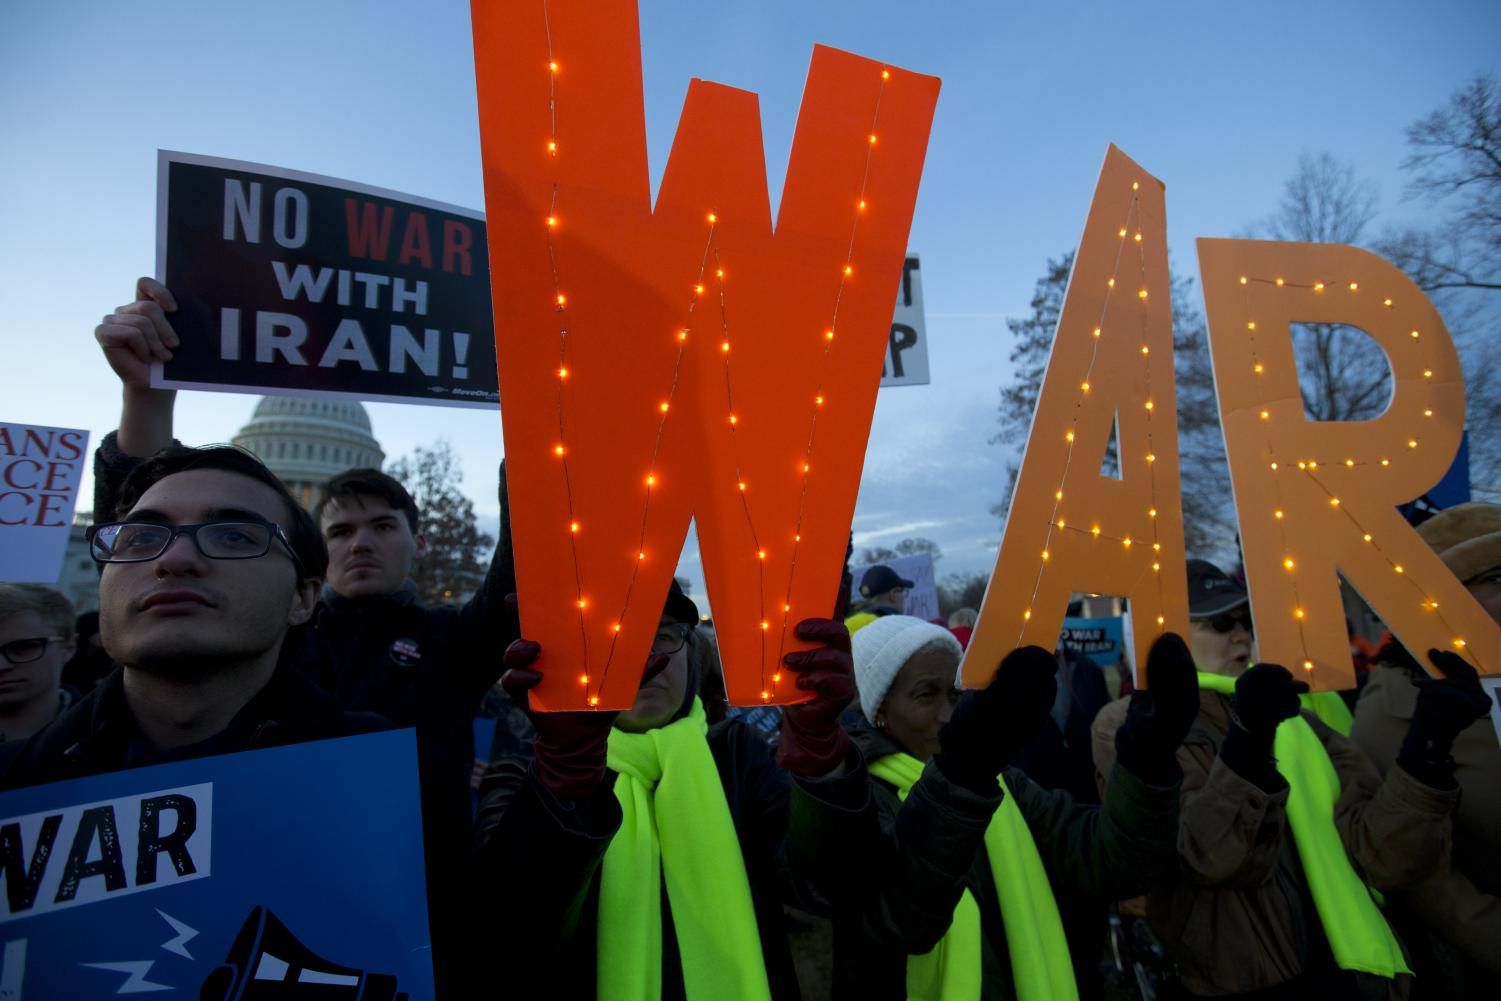 Demonstrators protest outside of the U.S. Capitol, during a house vote to measure limiting President Donald Trump's ability to take military action against Iran, on Capitol Hill, in Washington, Thursday, Jan. 9, 2020. (AP Photo/Jose Luis Magana)